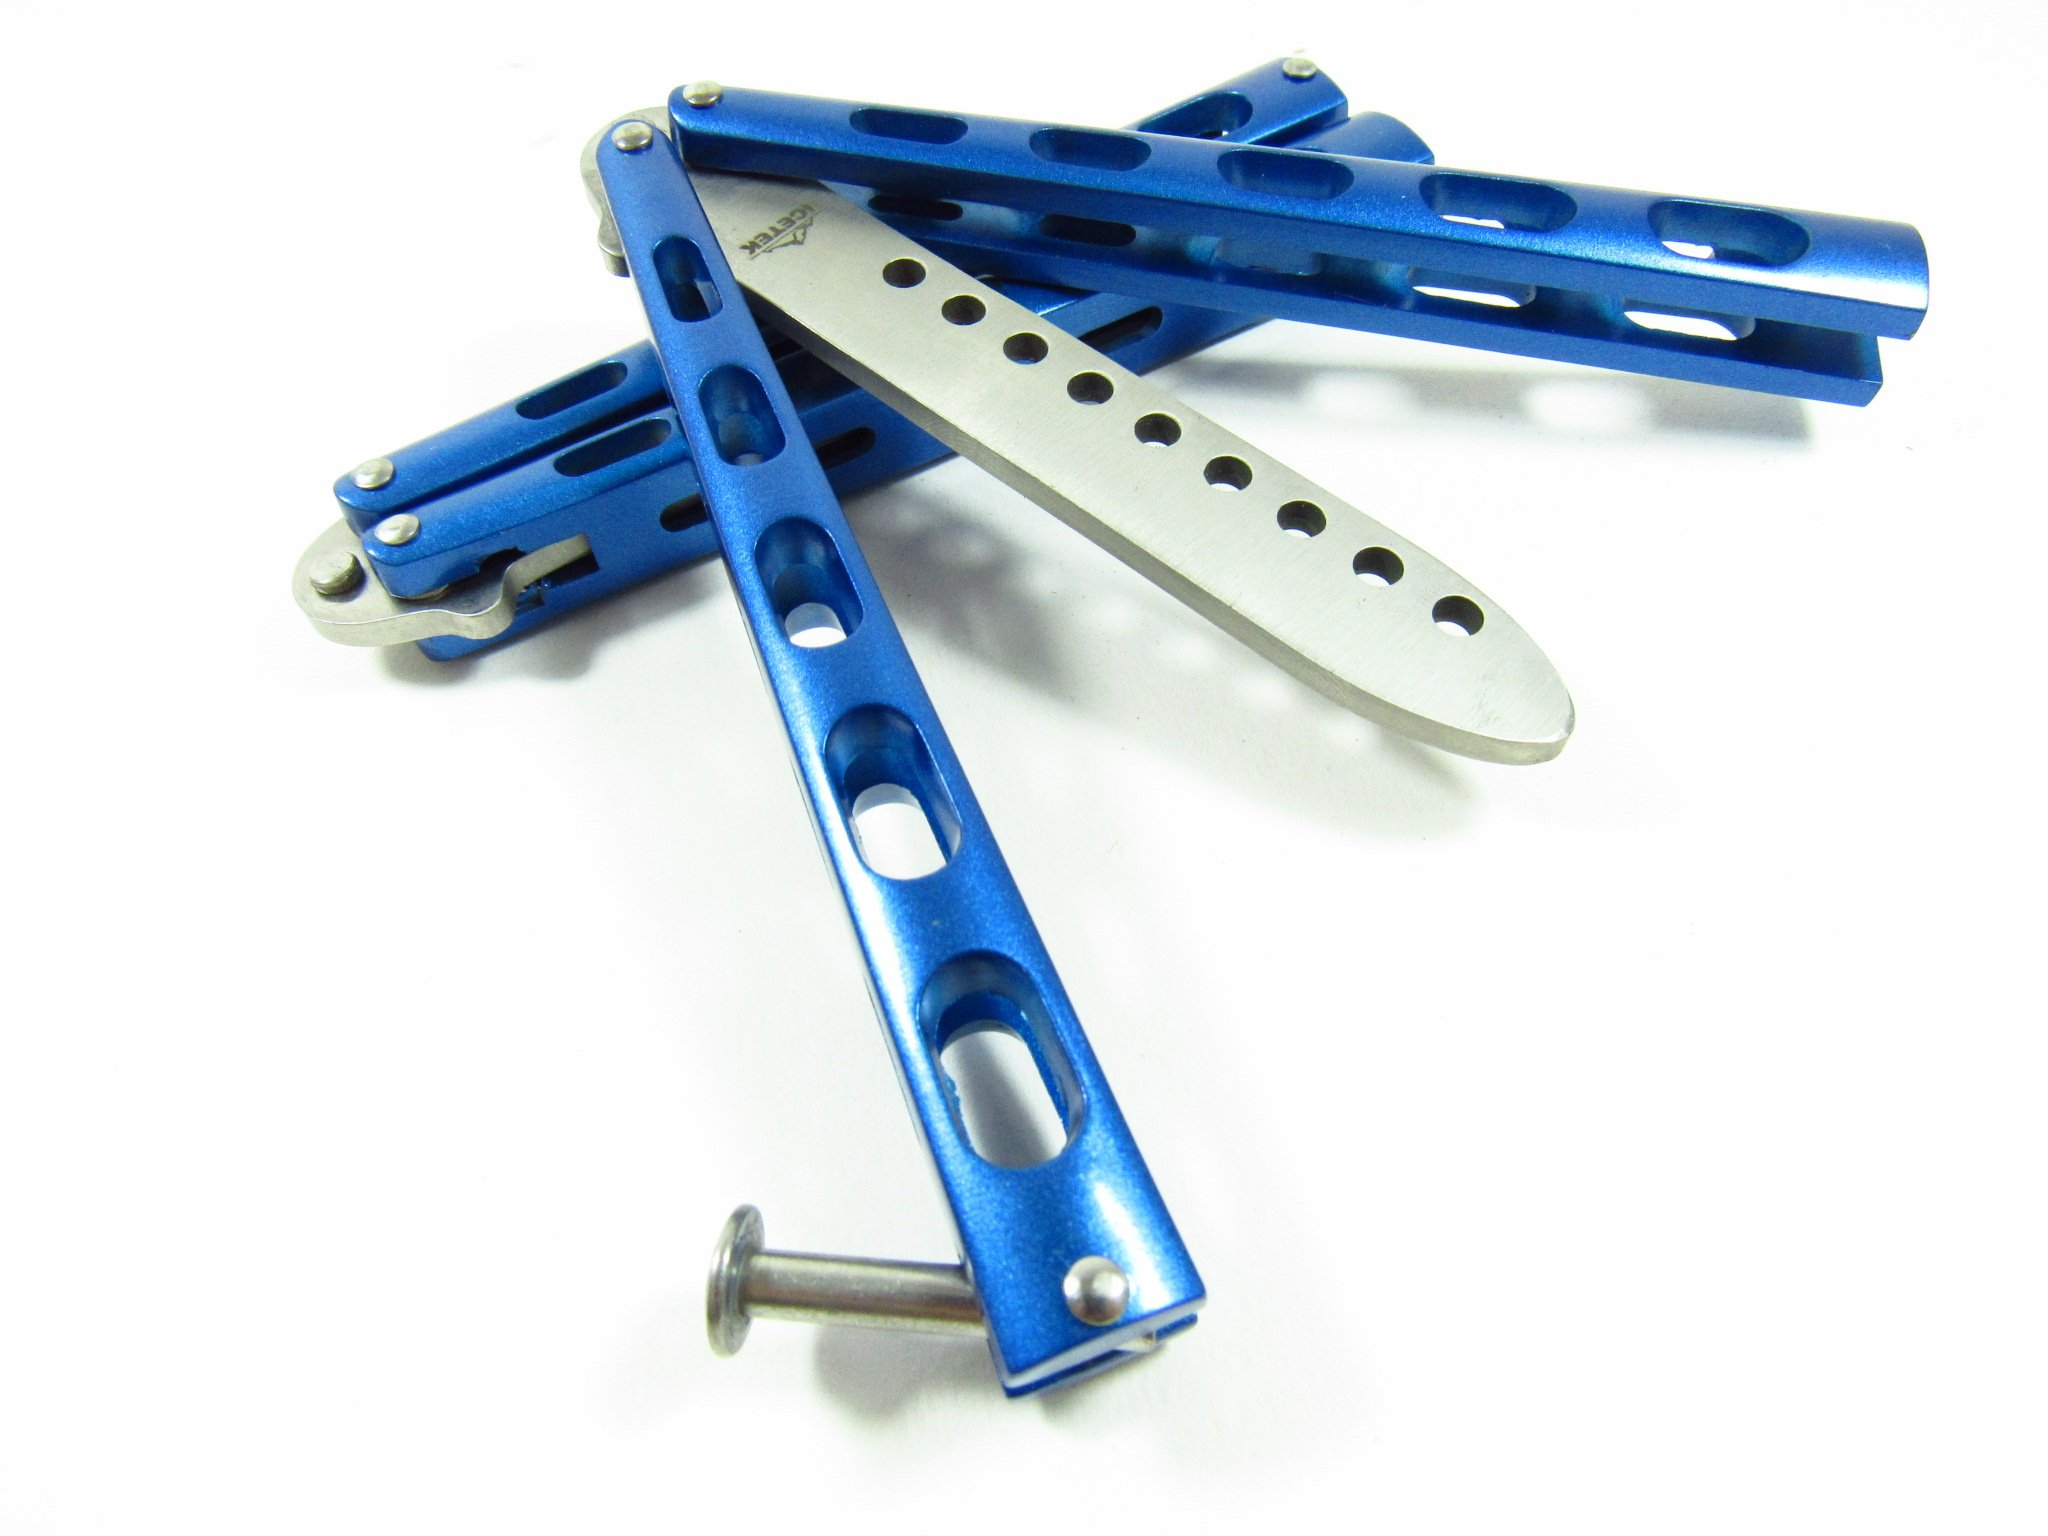 Icetek Sports 44477 Metal Practice Balisong Butterfly Knife Trainer Blue 6